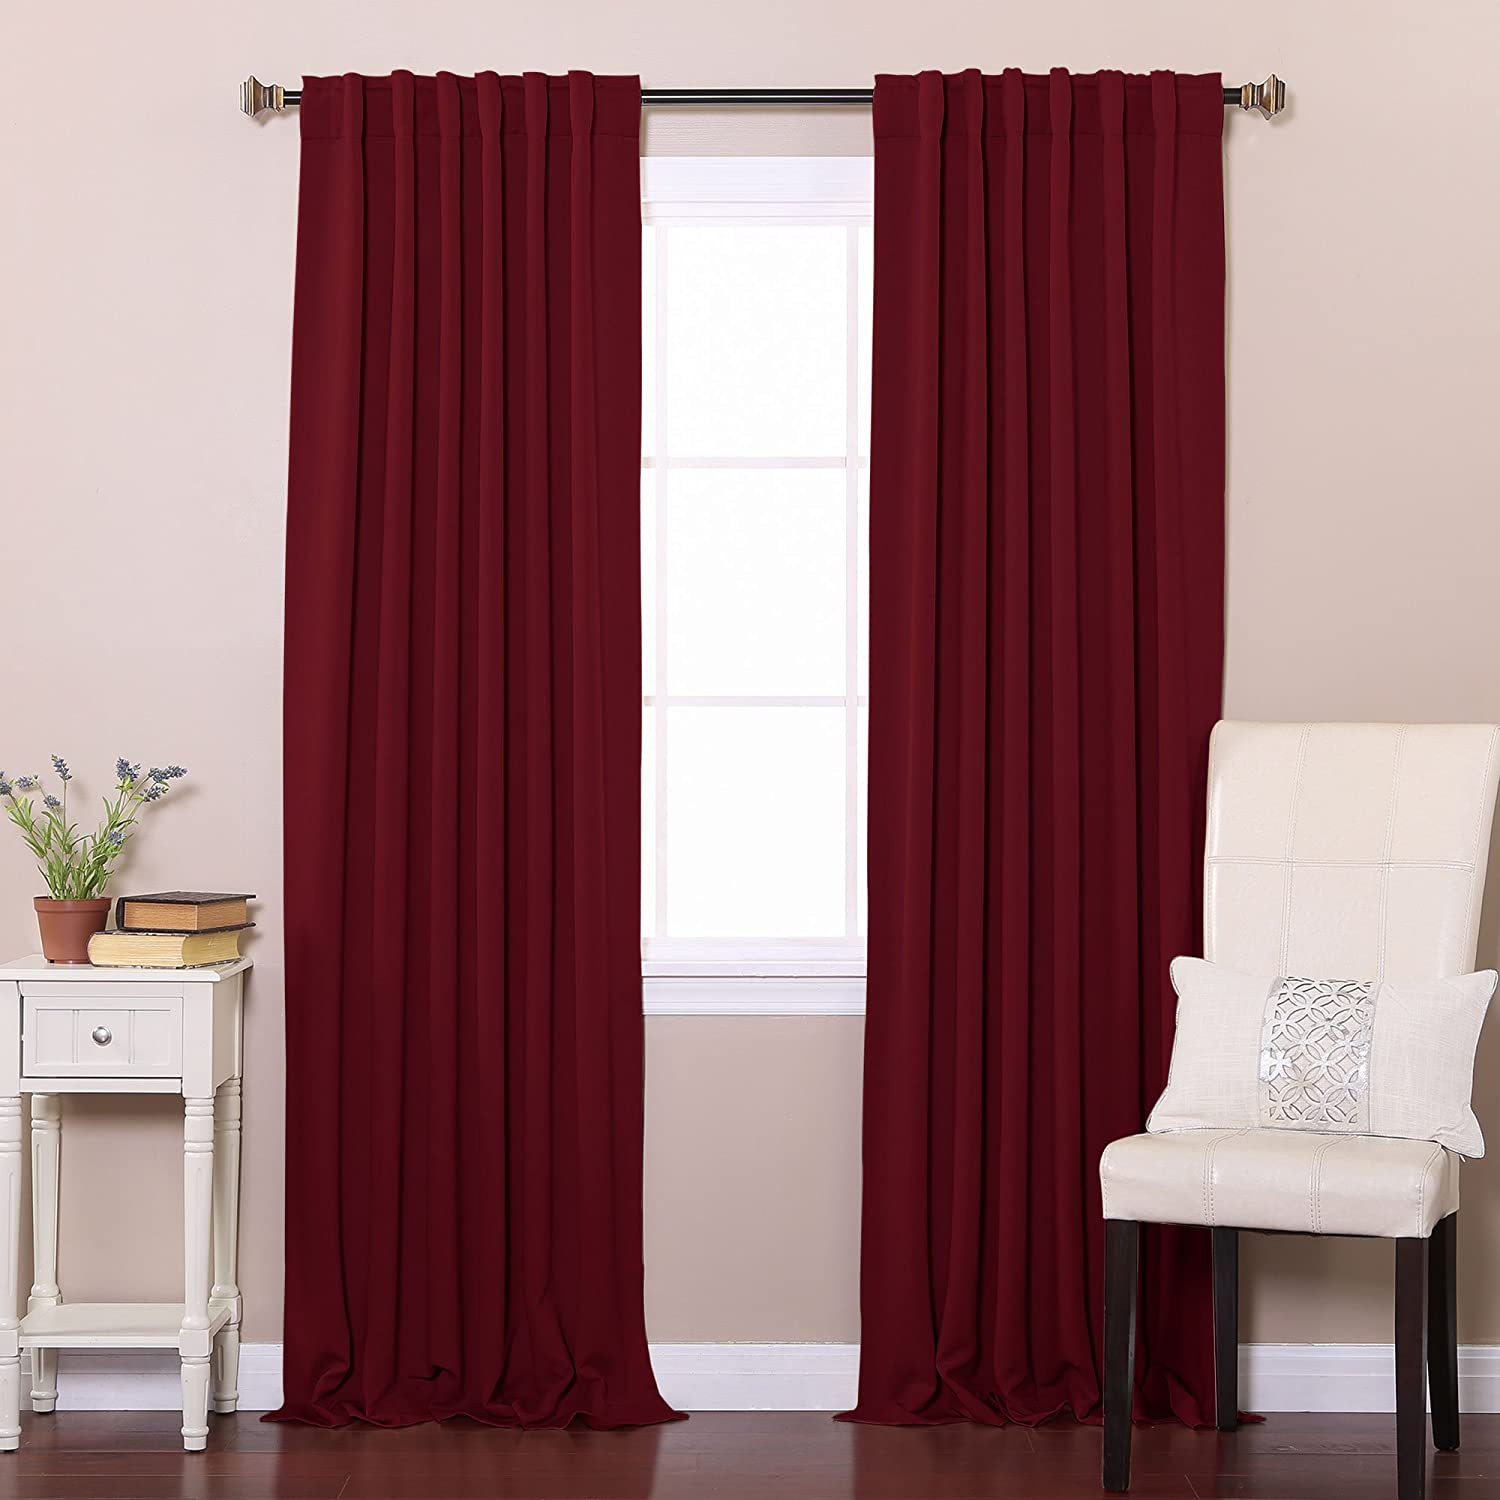 curtain thermal blackout dp pleat uk curtains amazon pencil navy moonlight kitchen co home